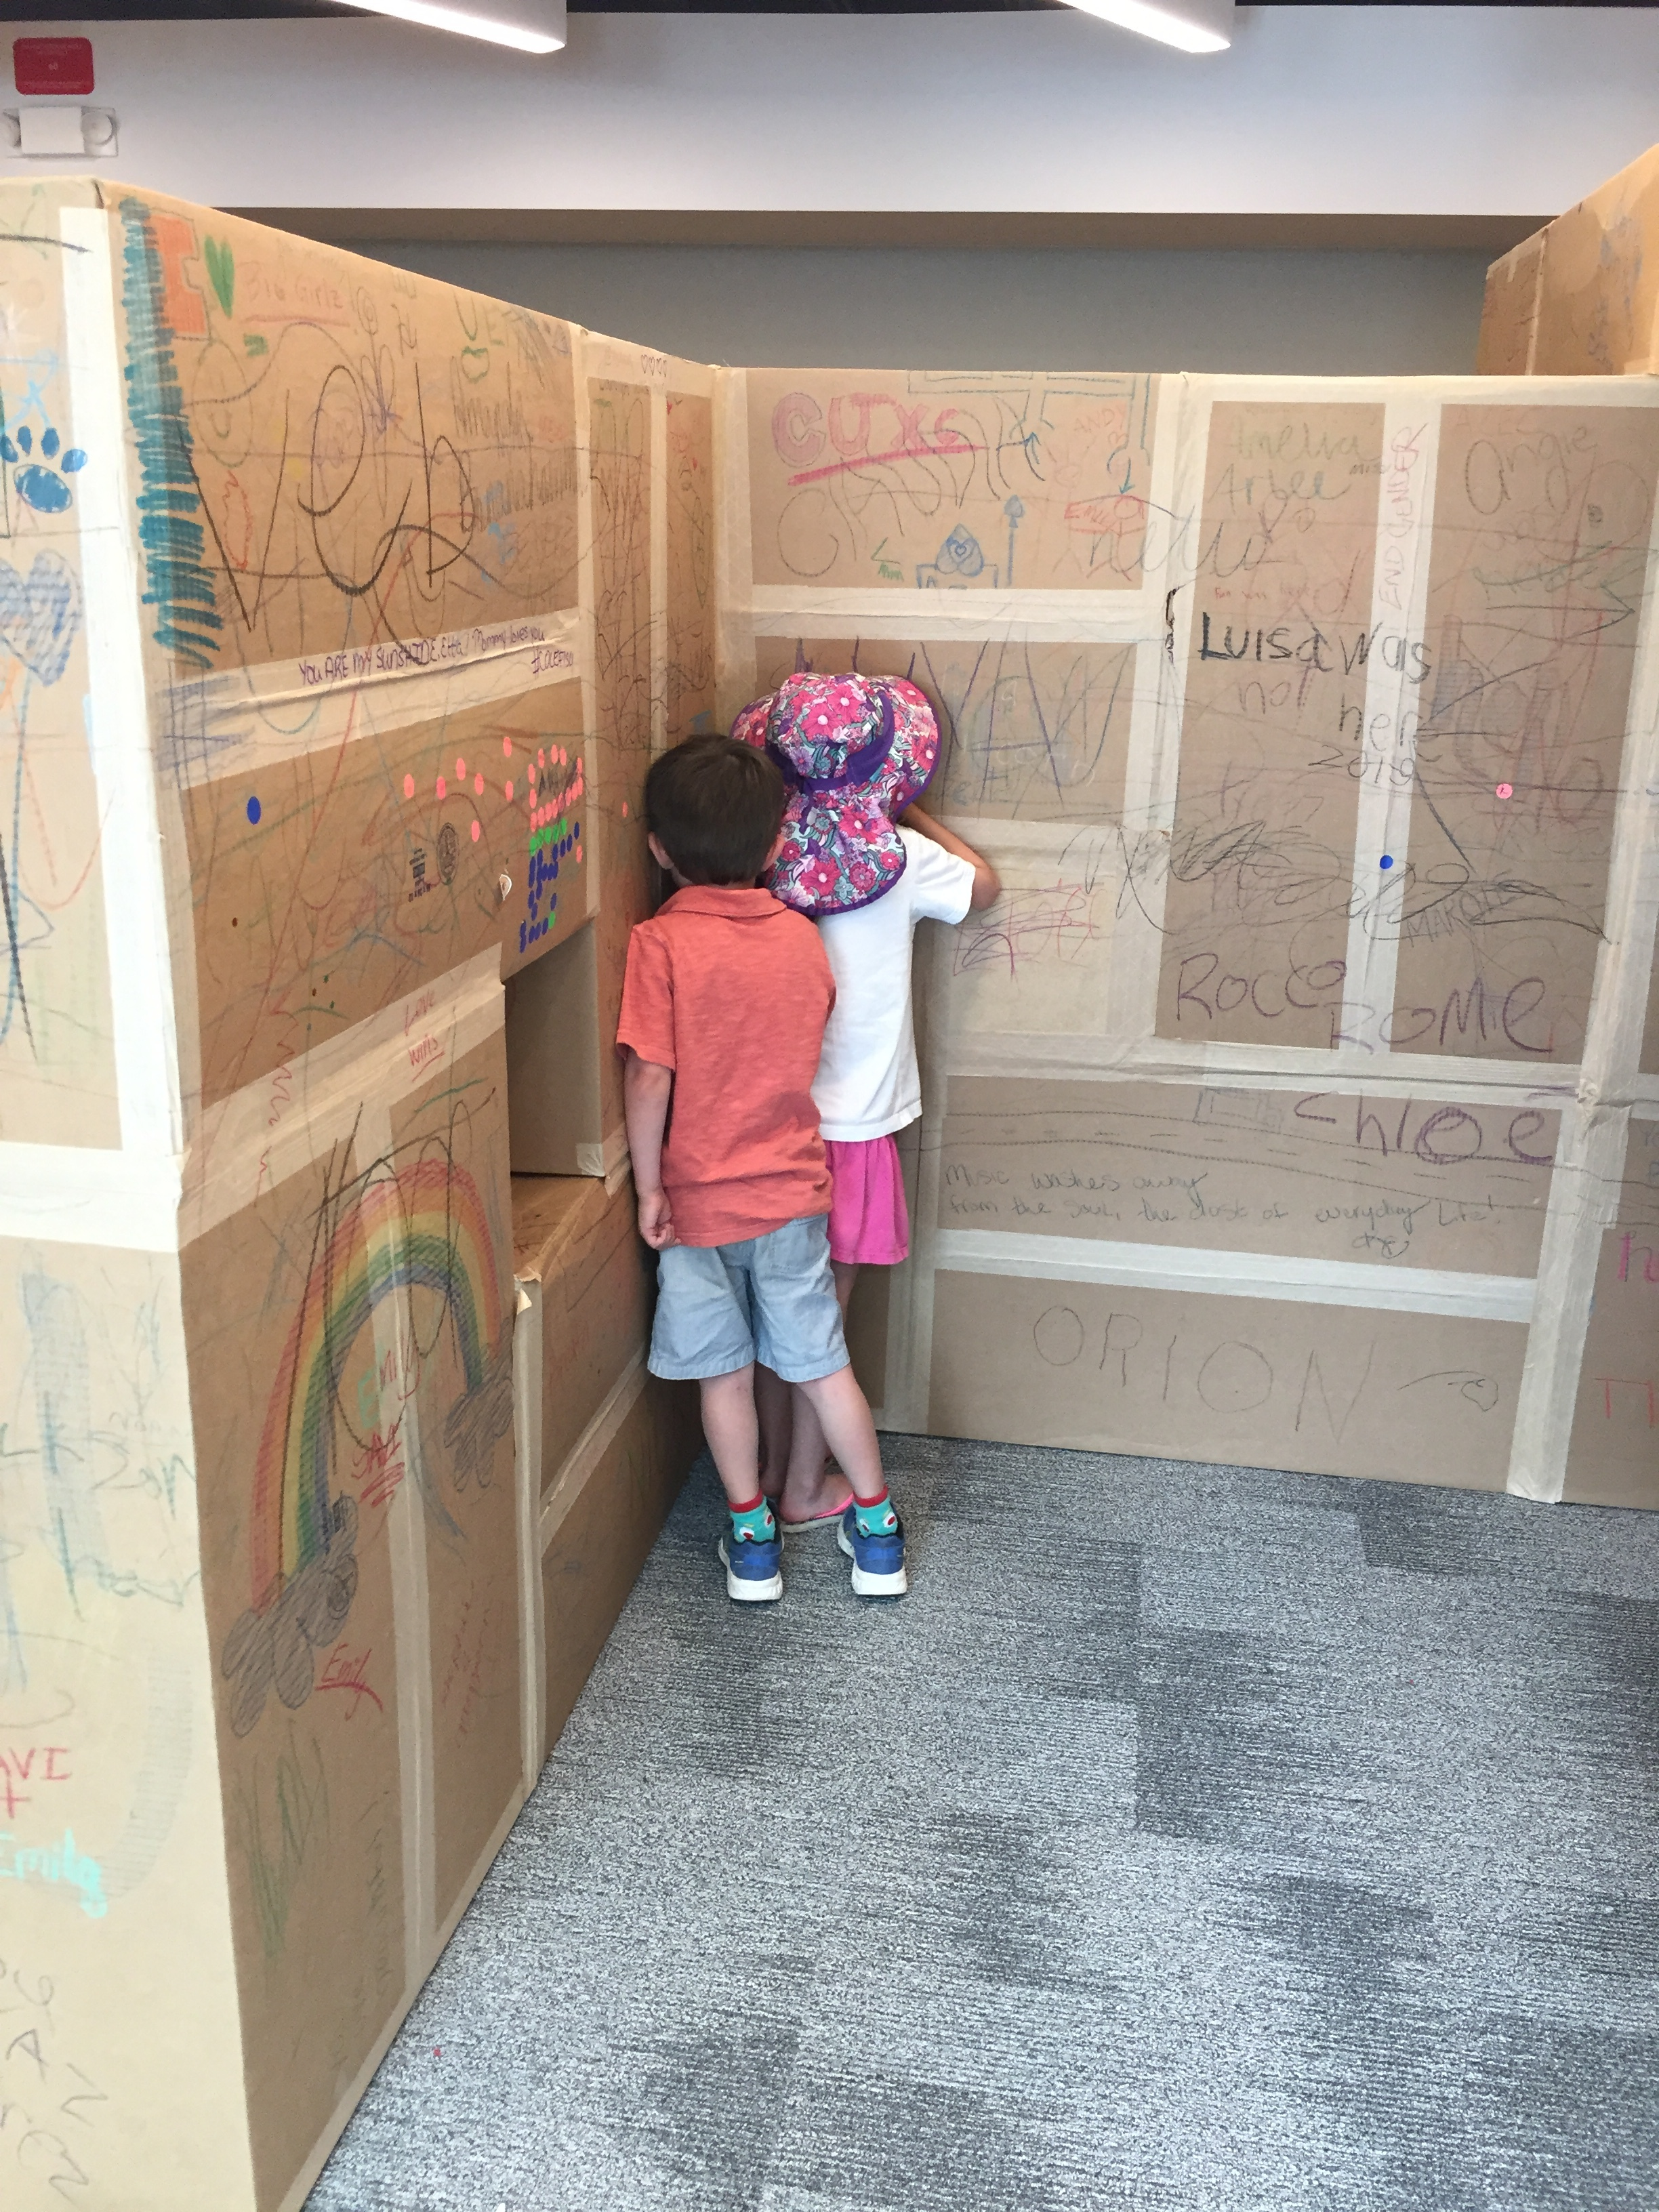 Playing hide and seek with new-found friend at Boulder History Museum cardboard maze.